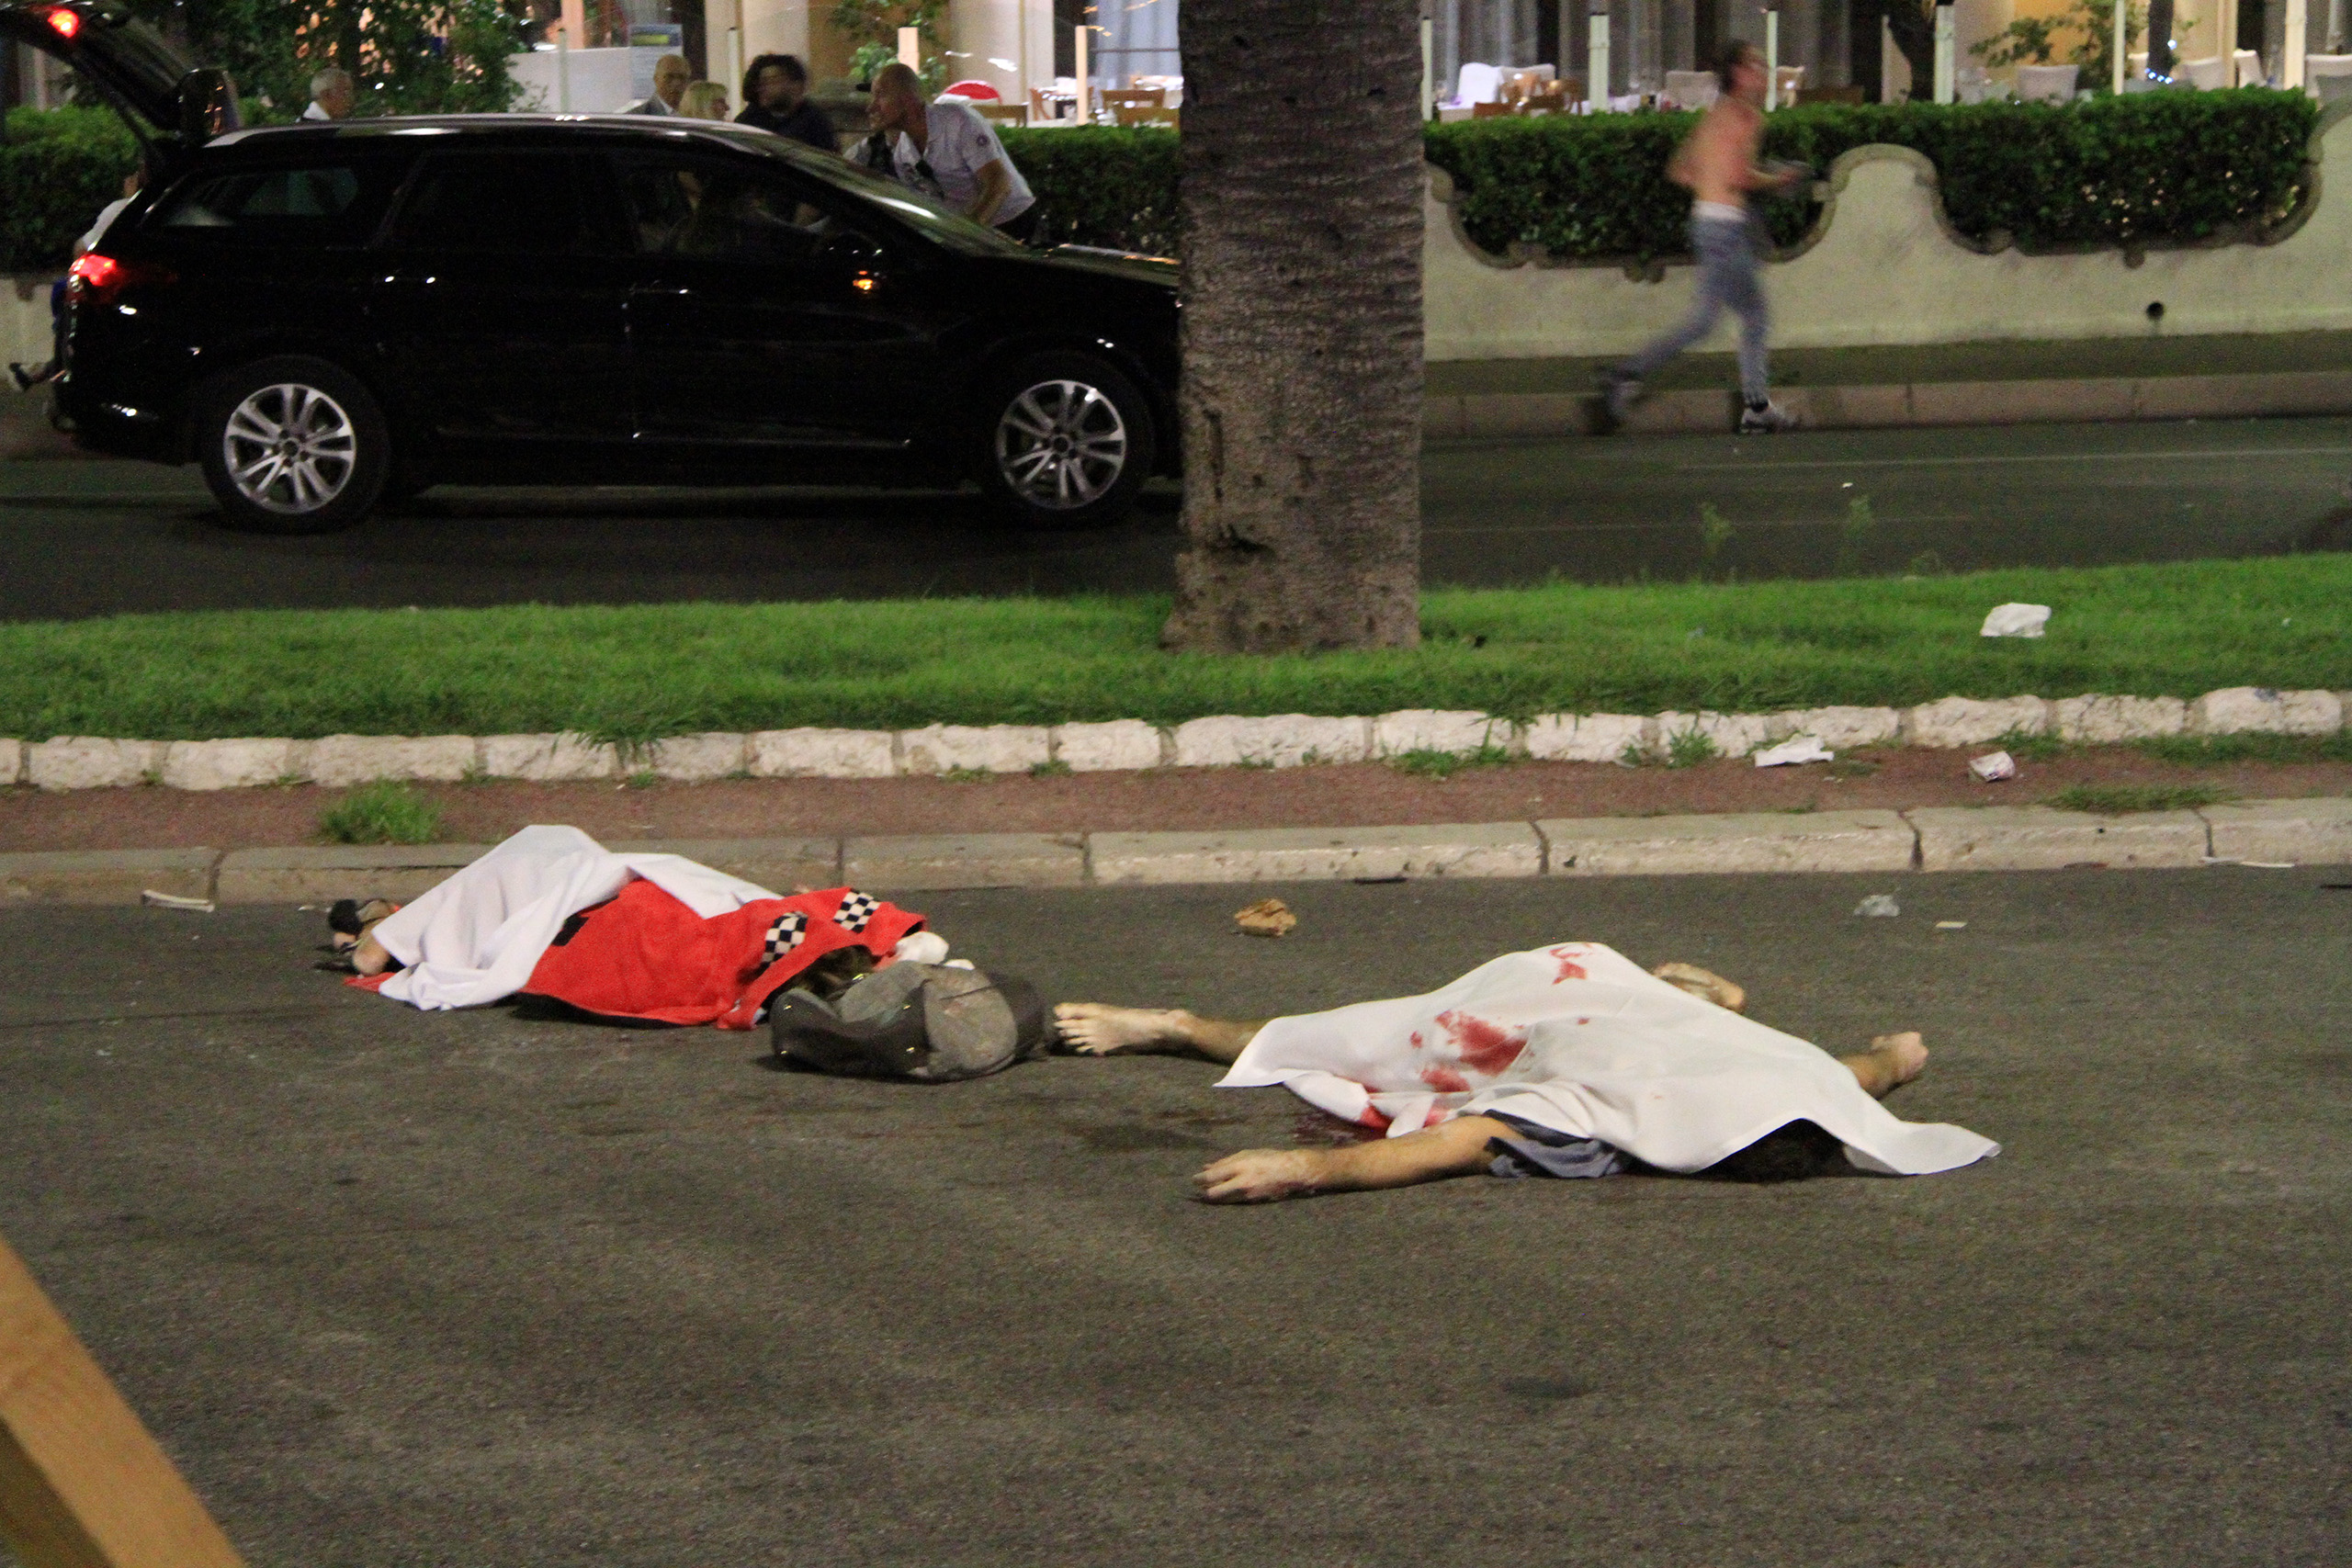 Bodies lie in the streets of Nice, France, after a terrorist attack left at least 77 dead and dozens injured on July 14, 2016.